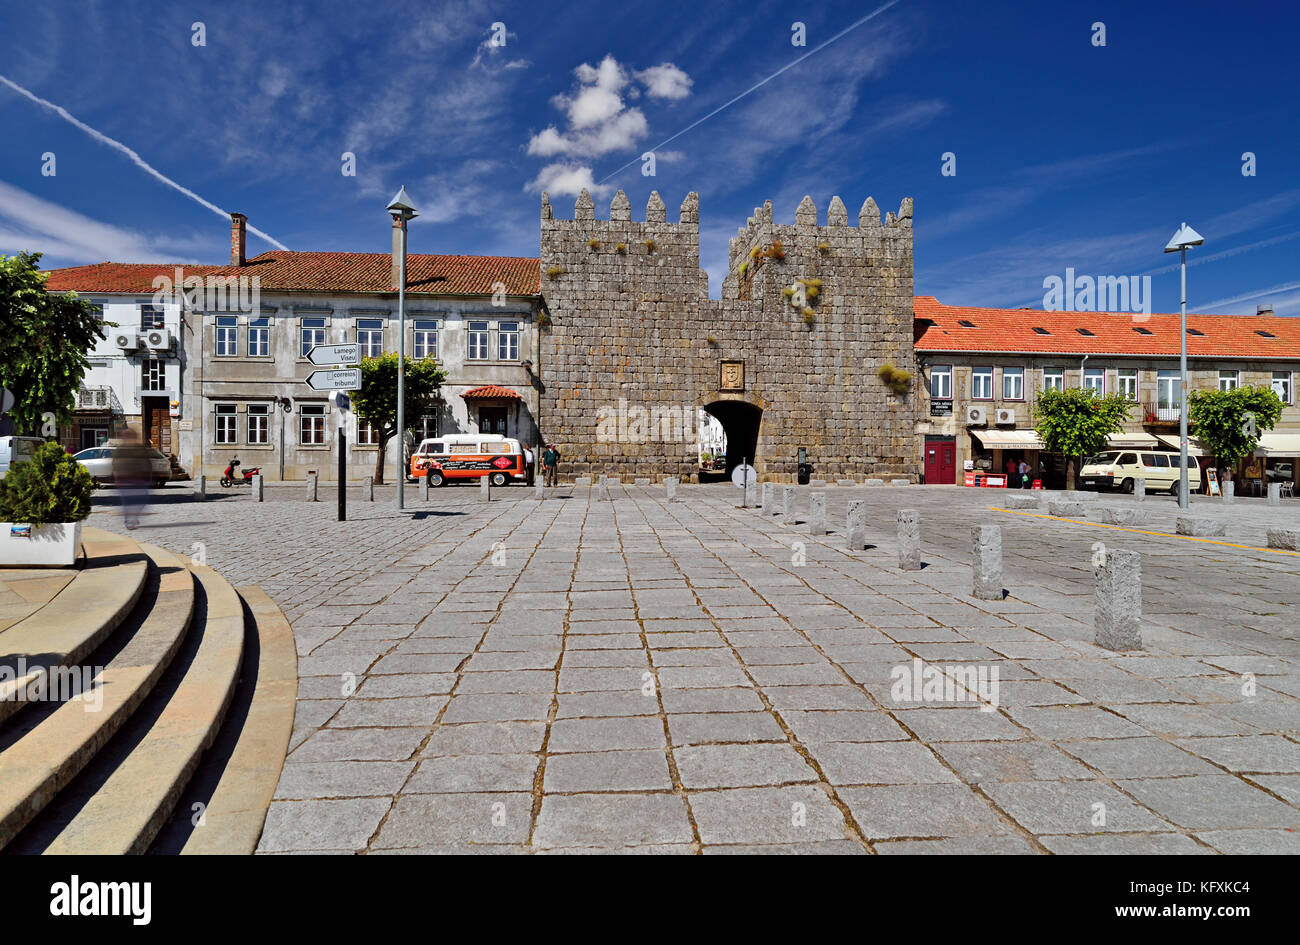 Wide stone paved square with medieval entrance gate leading to historic center in Trancoso - Stock Image